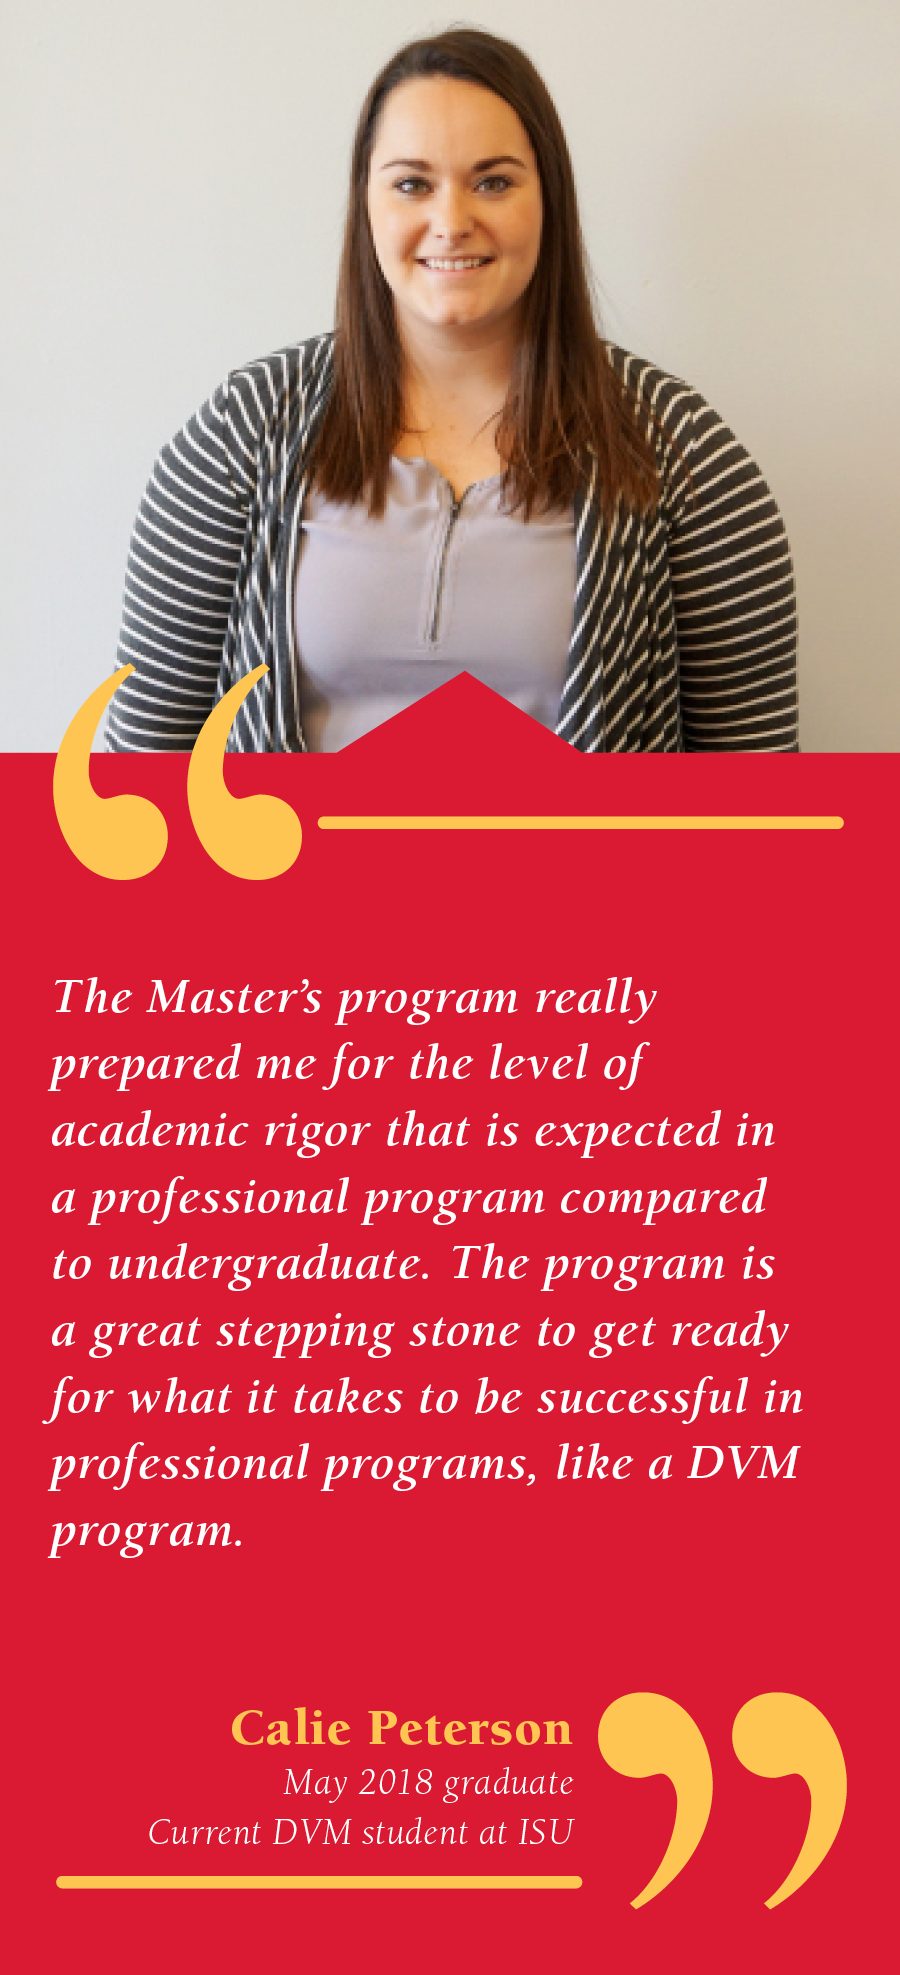 Calie Peterson, May 2018 graduate, Current DVM student at Iowa State, The One-Year Master's program really prepared my for the level of academic rigor that is expected in a professional program compared to undergraduate. The program is a great stepping stone to get ready for what i takes to be successful in professional programs, like a DVM program.